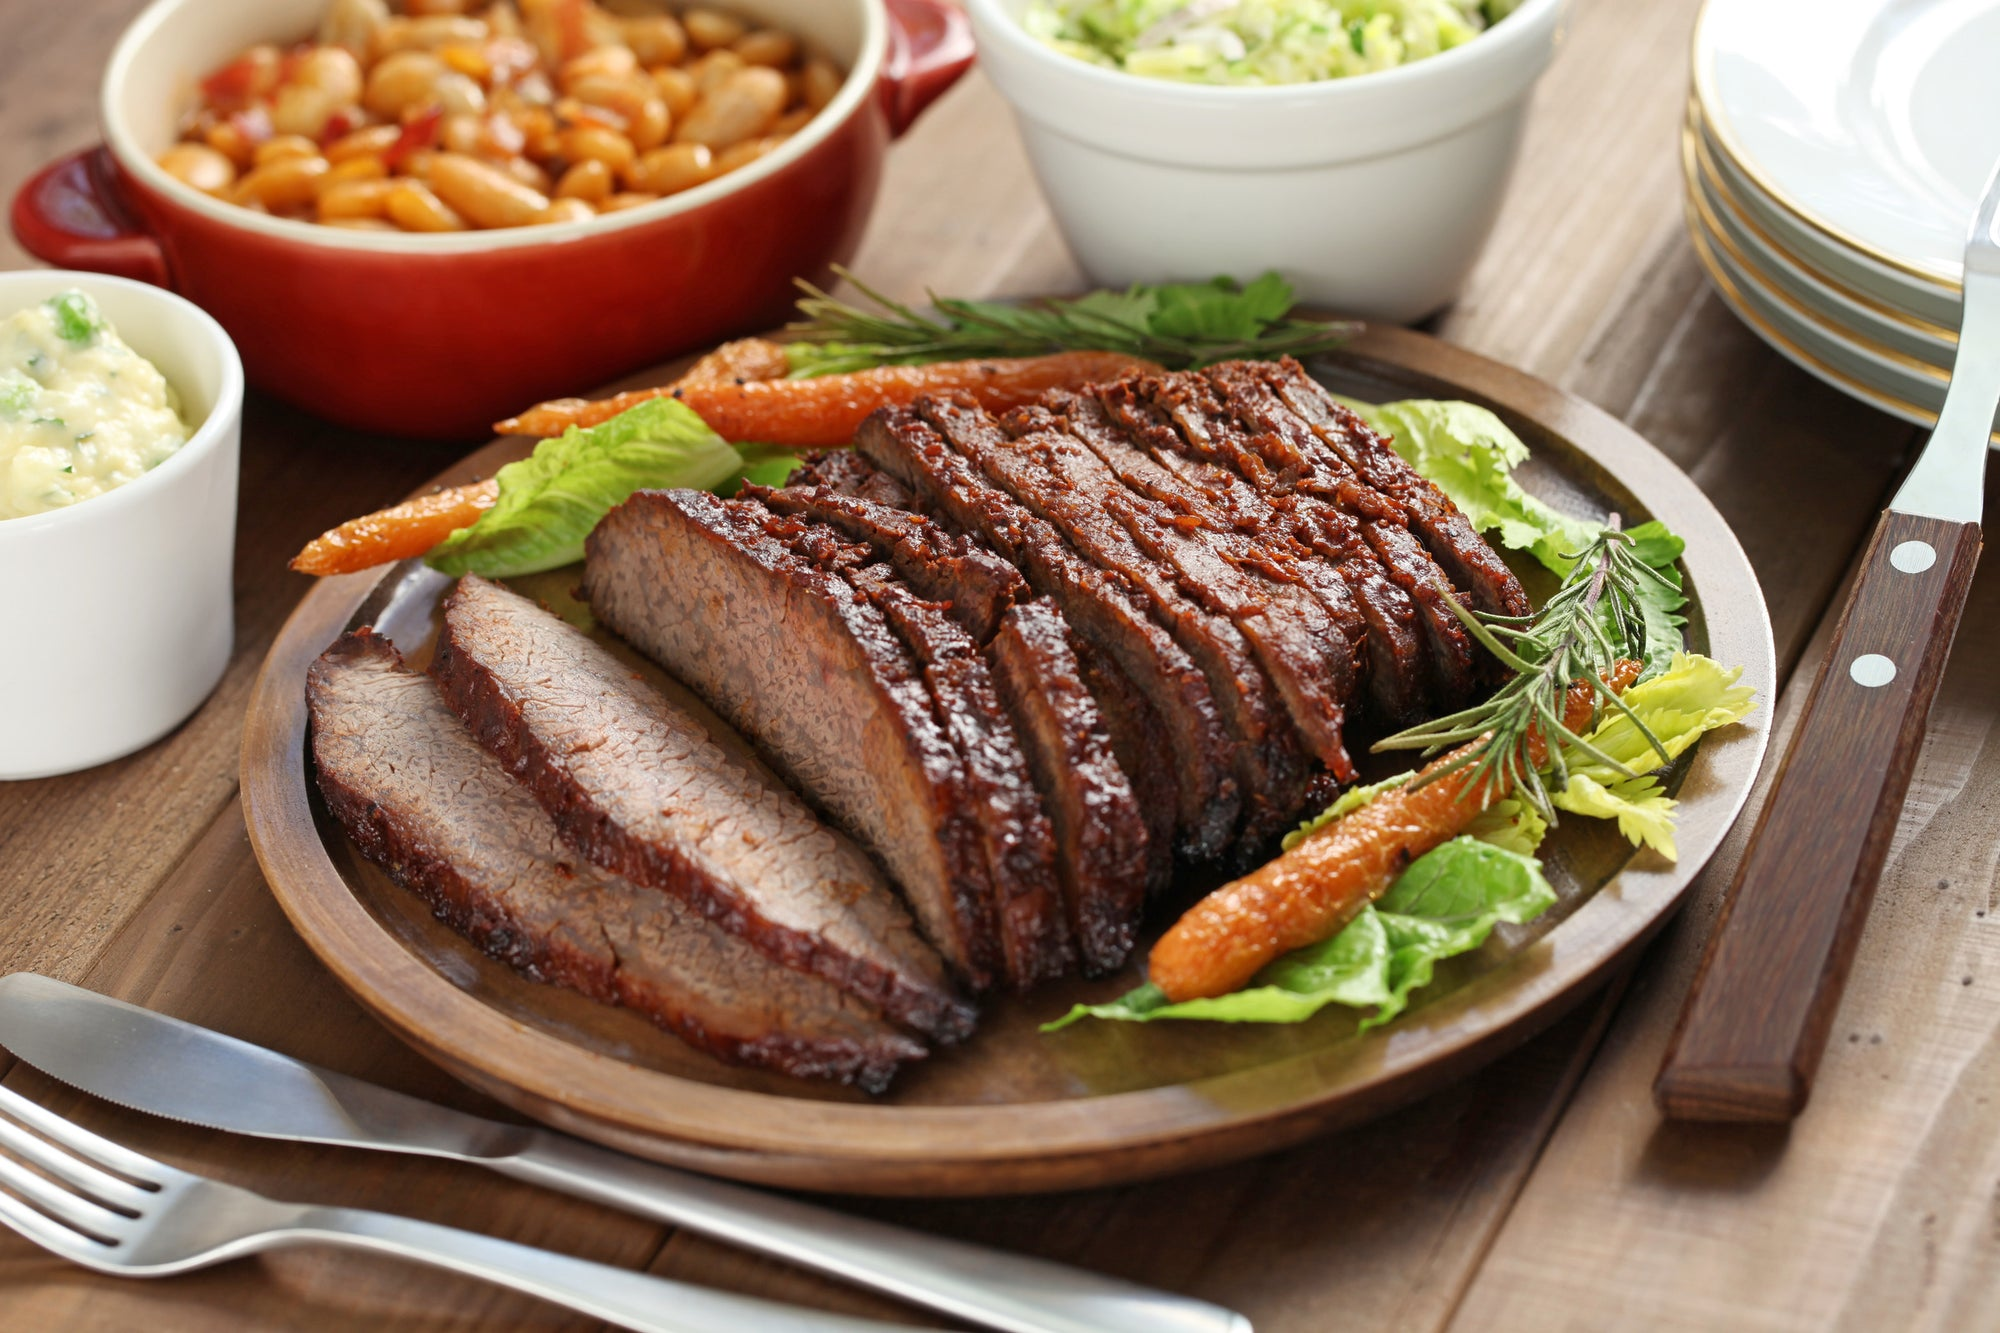 Brisket of Beef Recipe